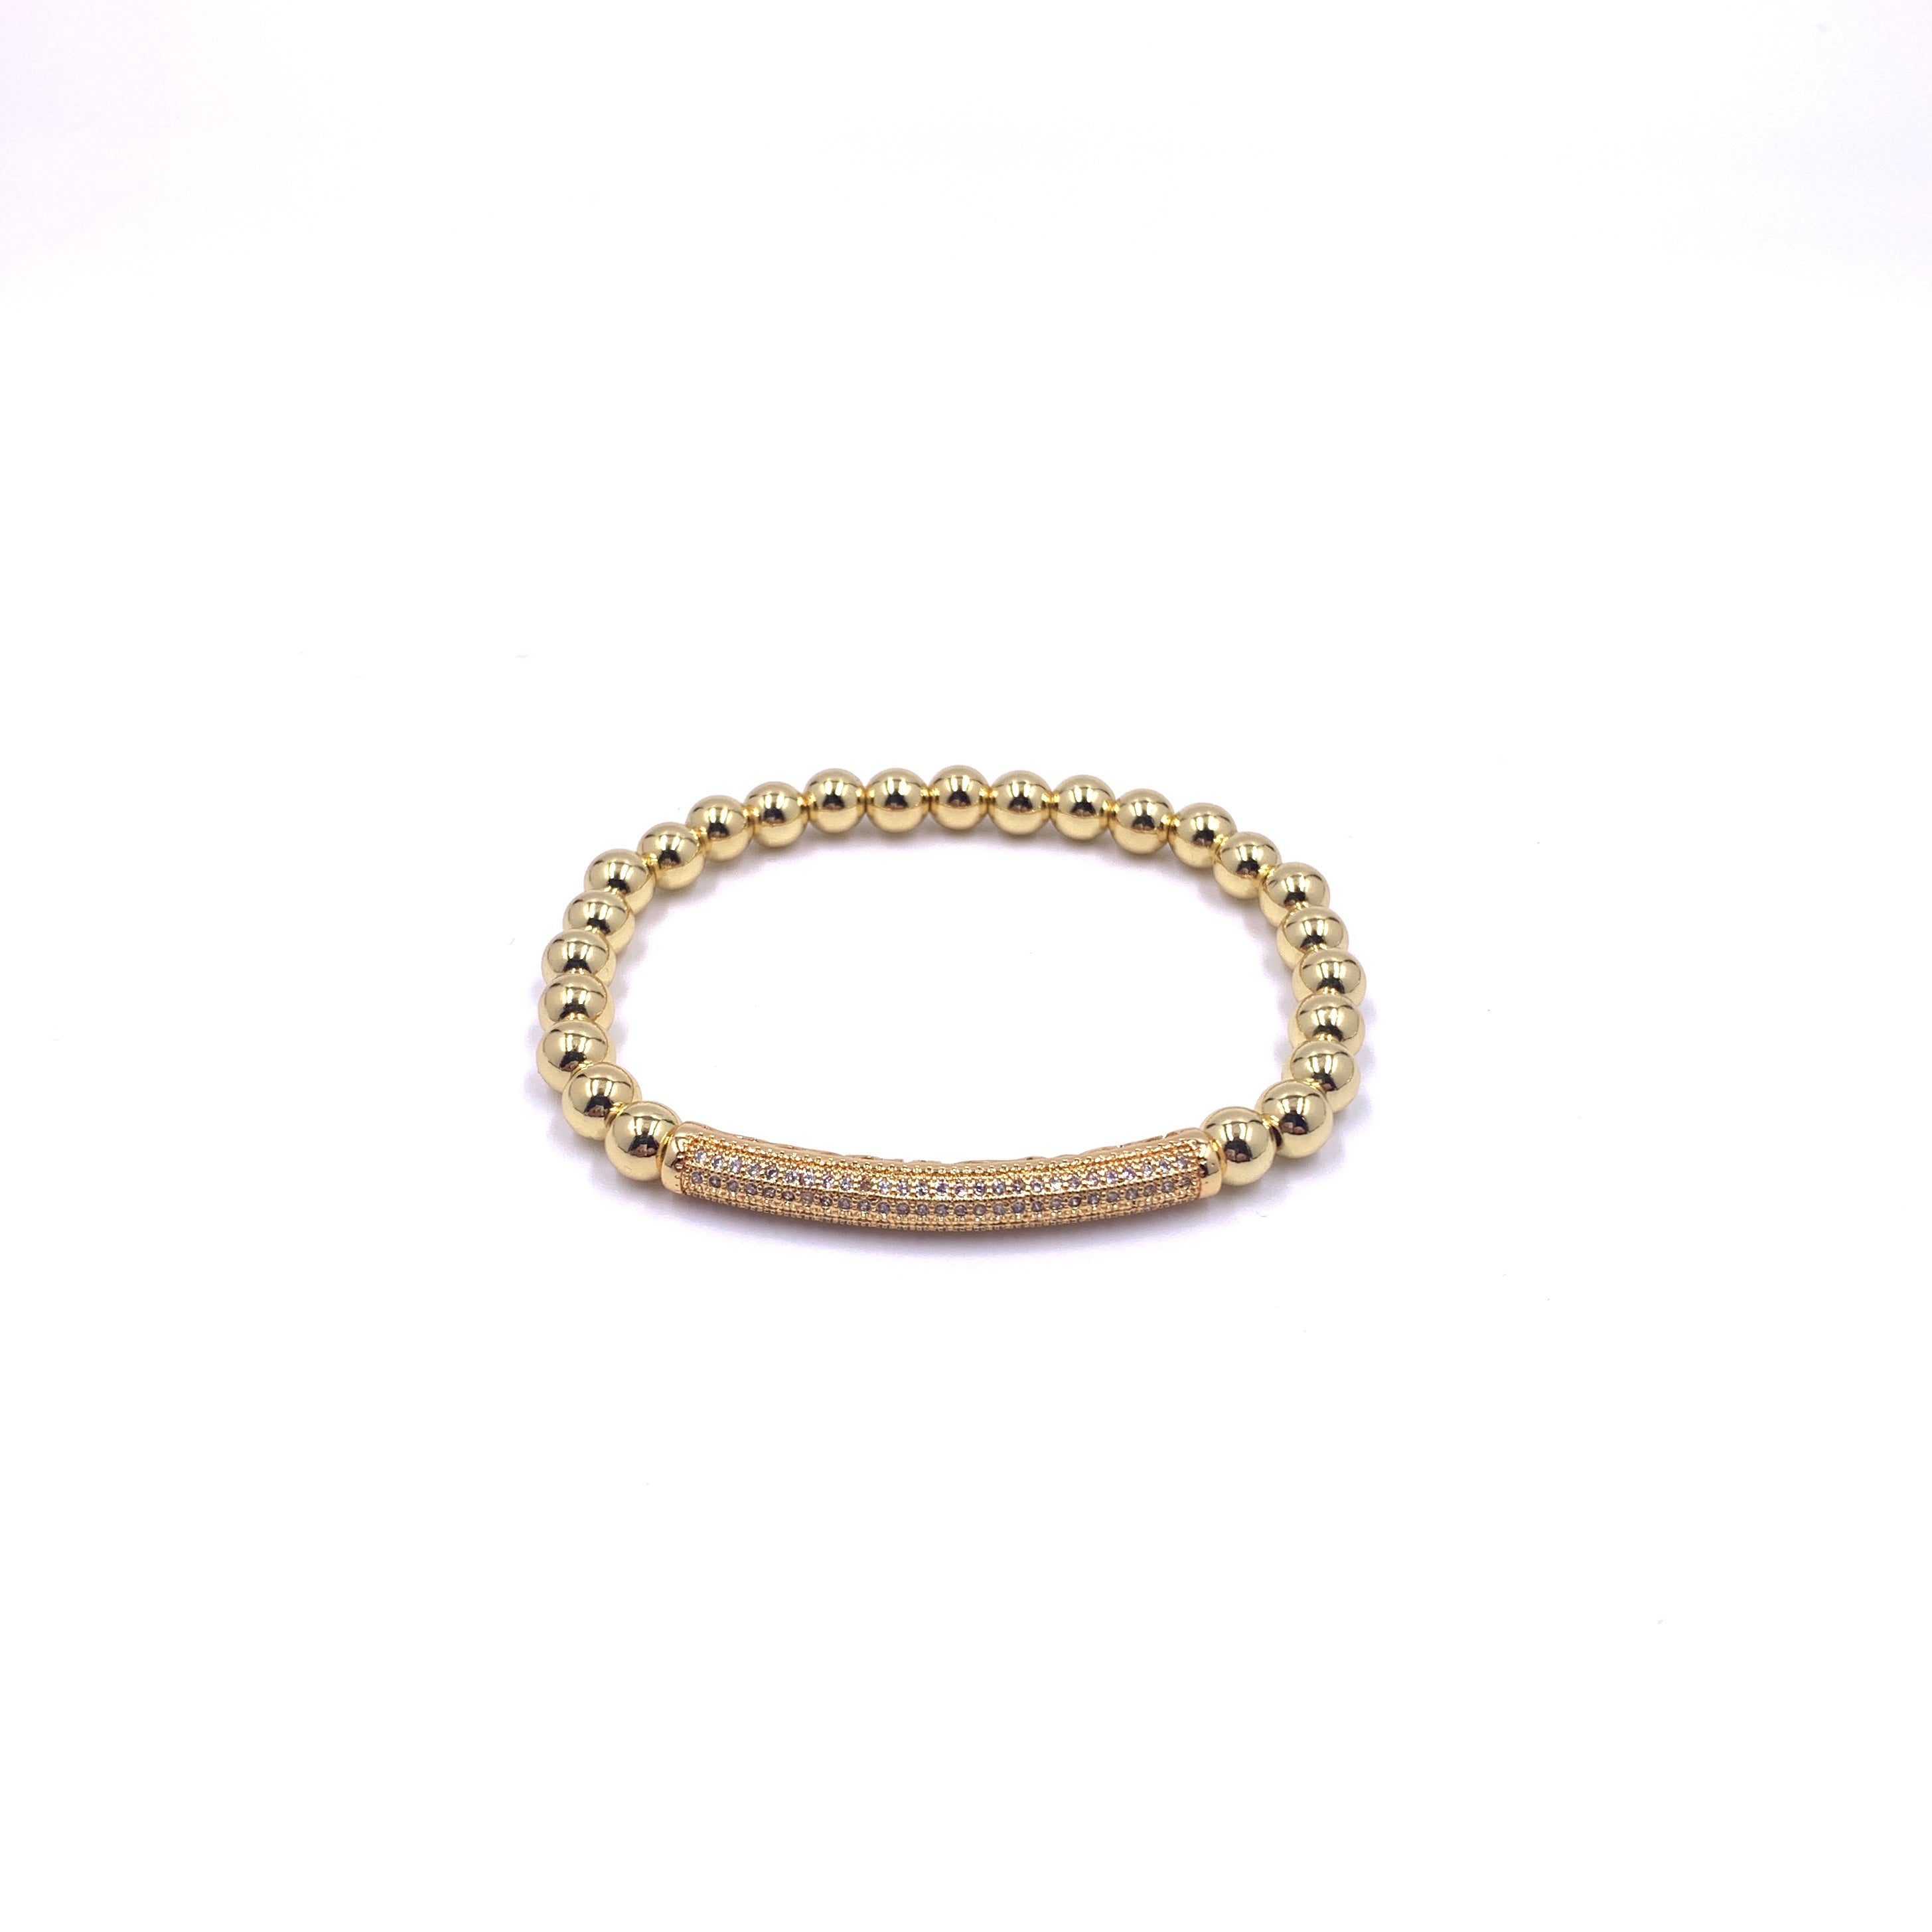 The Medium Bead Bracelet with Pave Bar in Gold